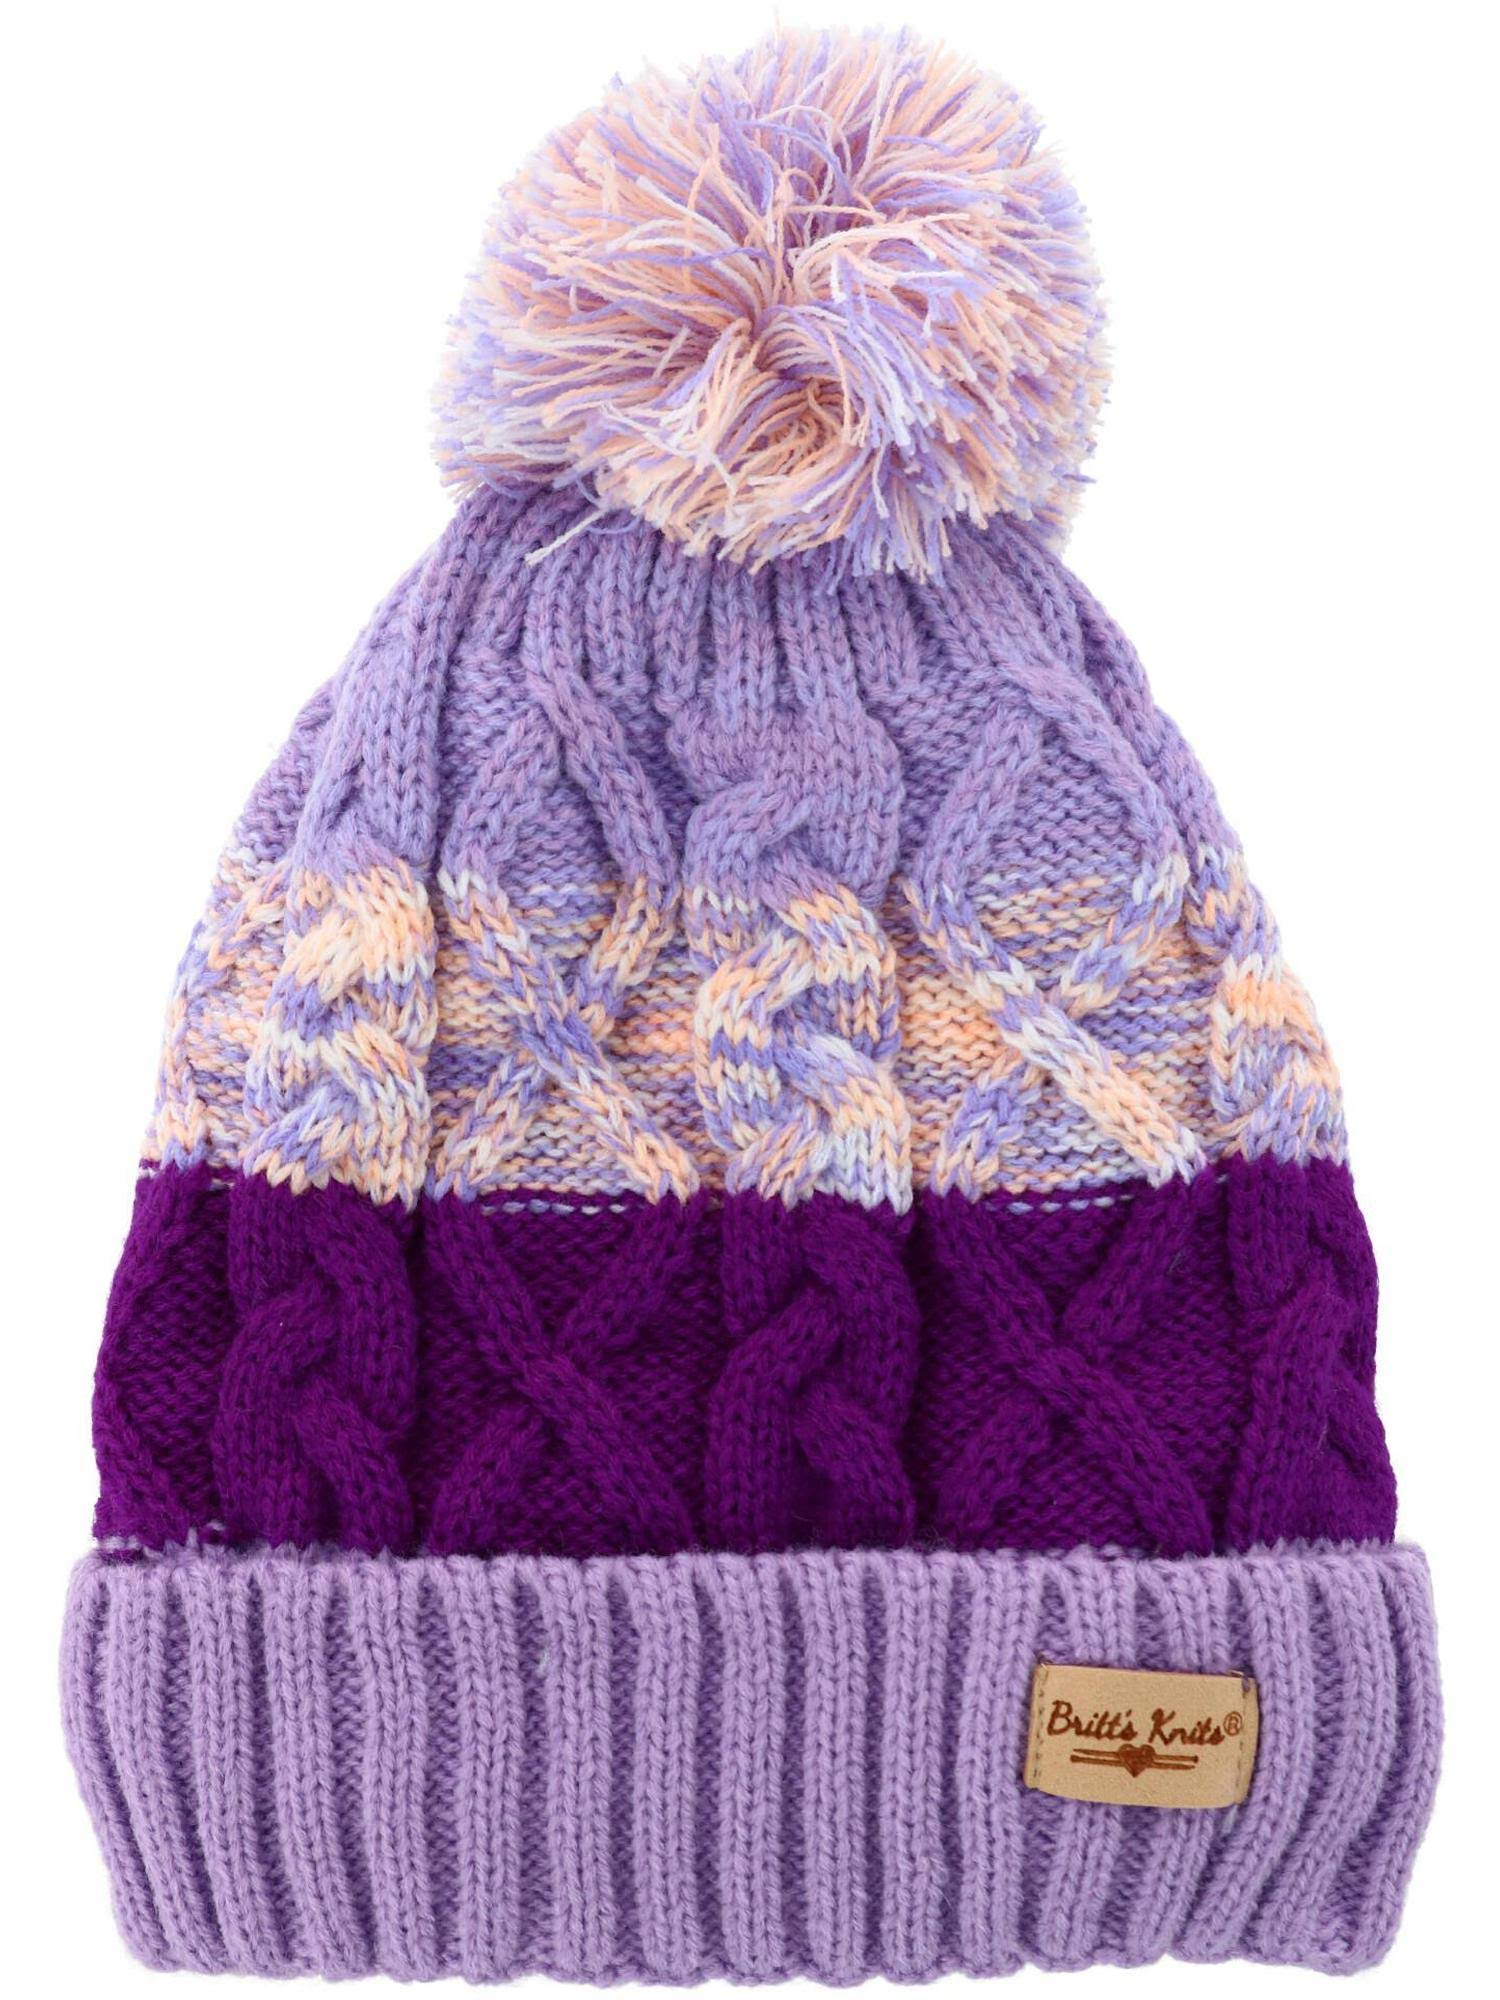 Britt's Knits Kids' Plush Lined Cable Knit Beanie Cuff Cap - Lavender